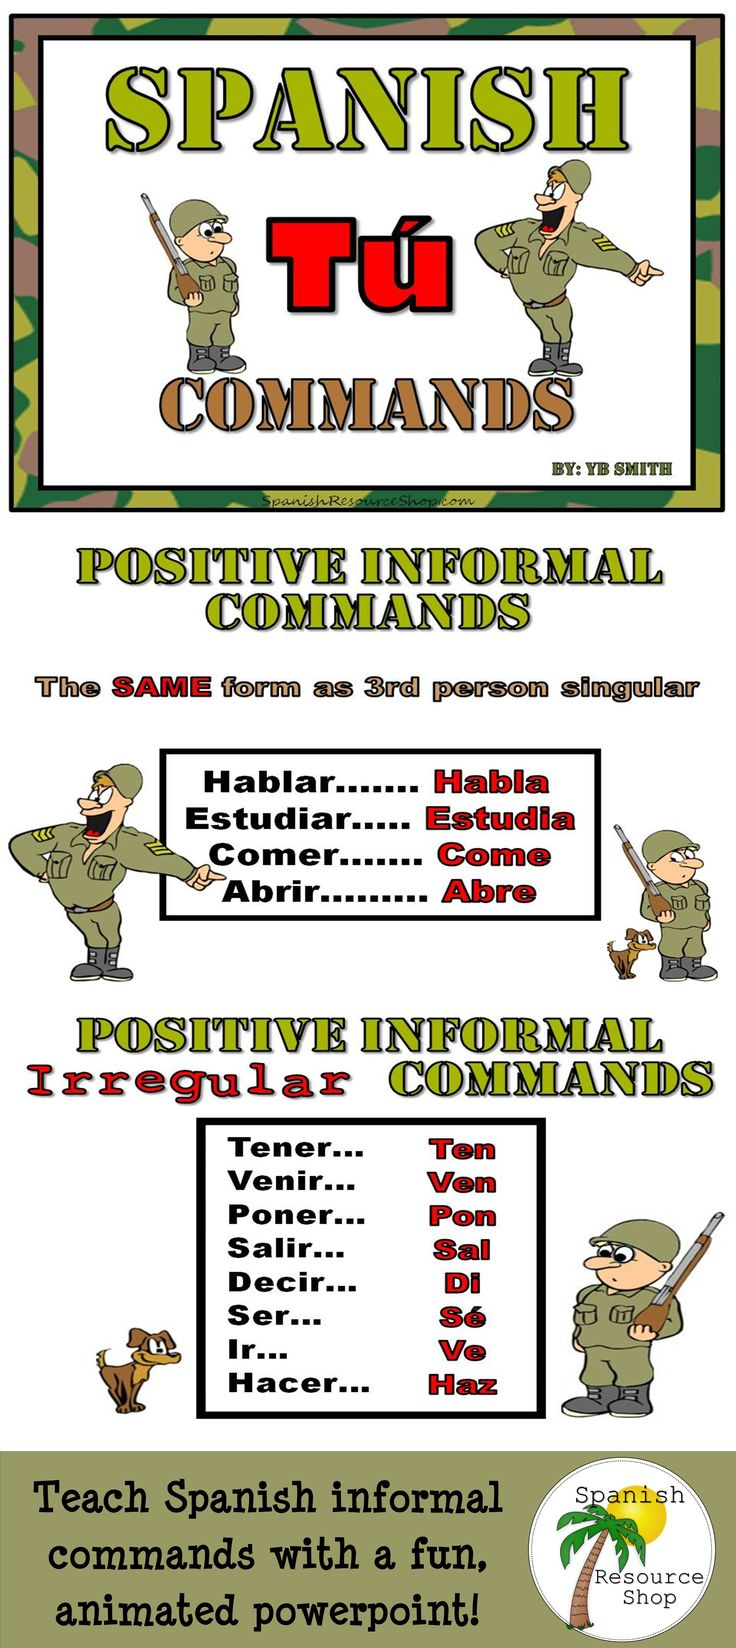 What are Informal Commands (Spanish)?